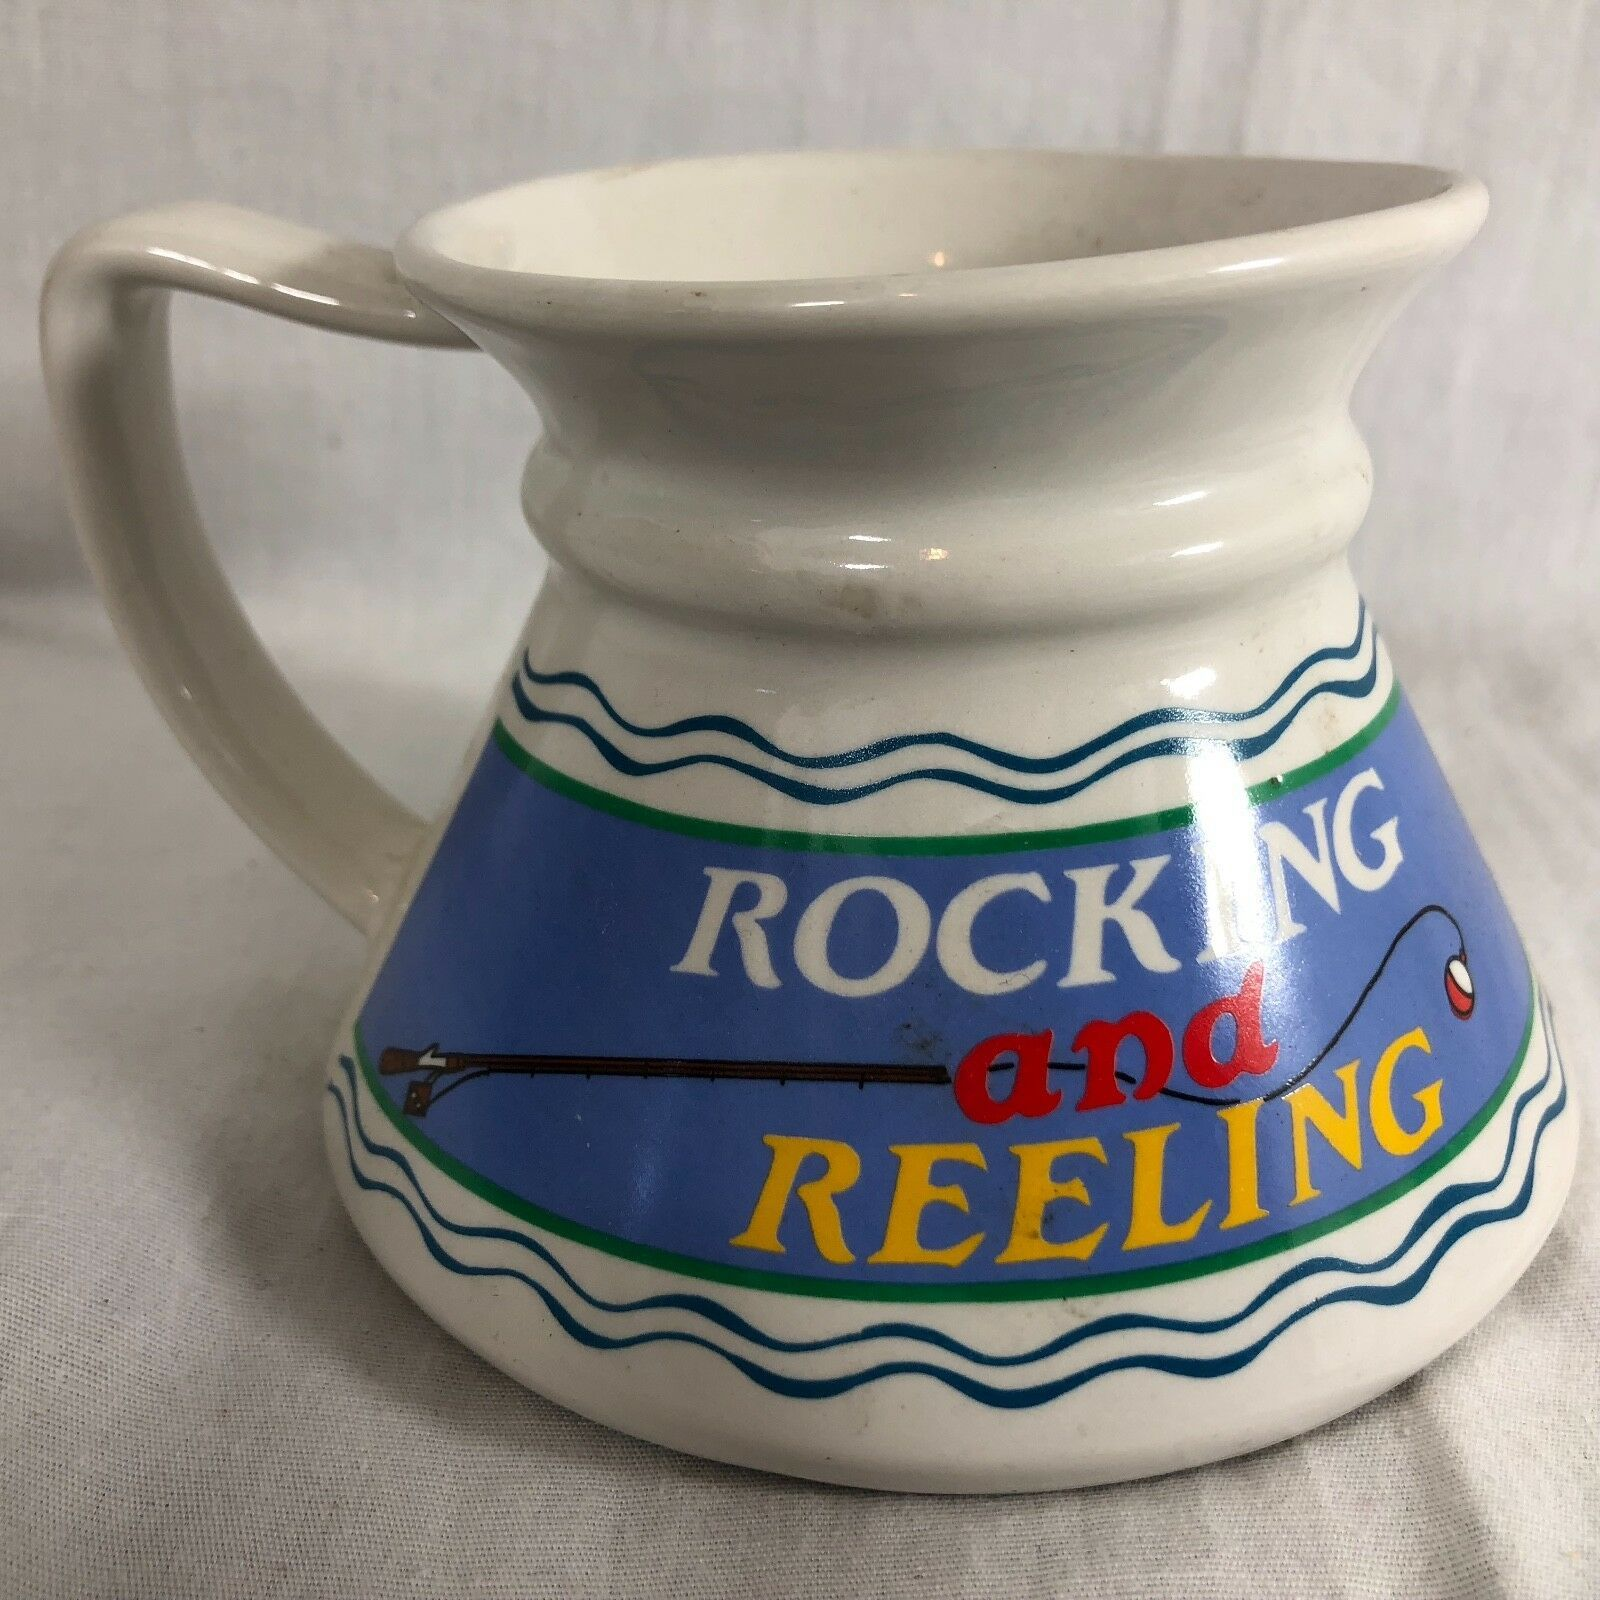 "Primary image for Rocking & Reeling Cup Mug Bottom Heavy 4.75"" diam 3.75"" Tall"